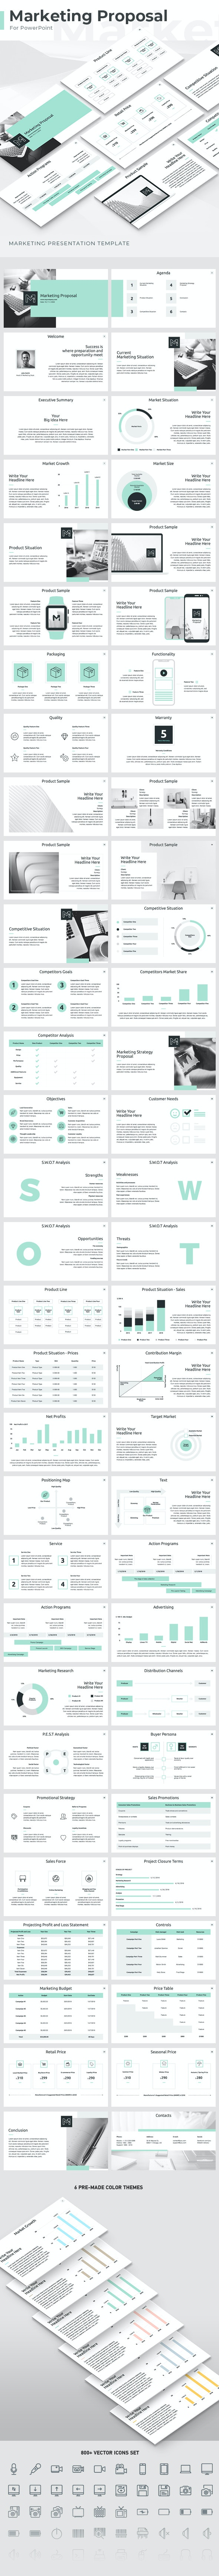 Marketing Proposal PowerPoint Template - Business PowerPoint Templates